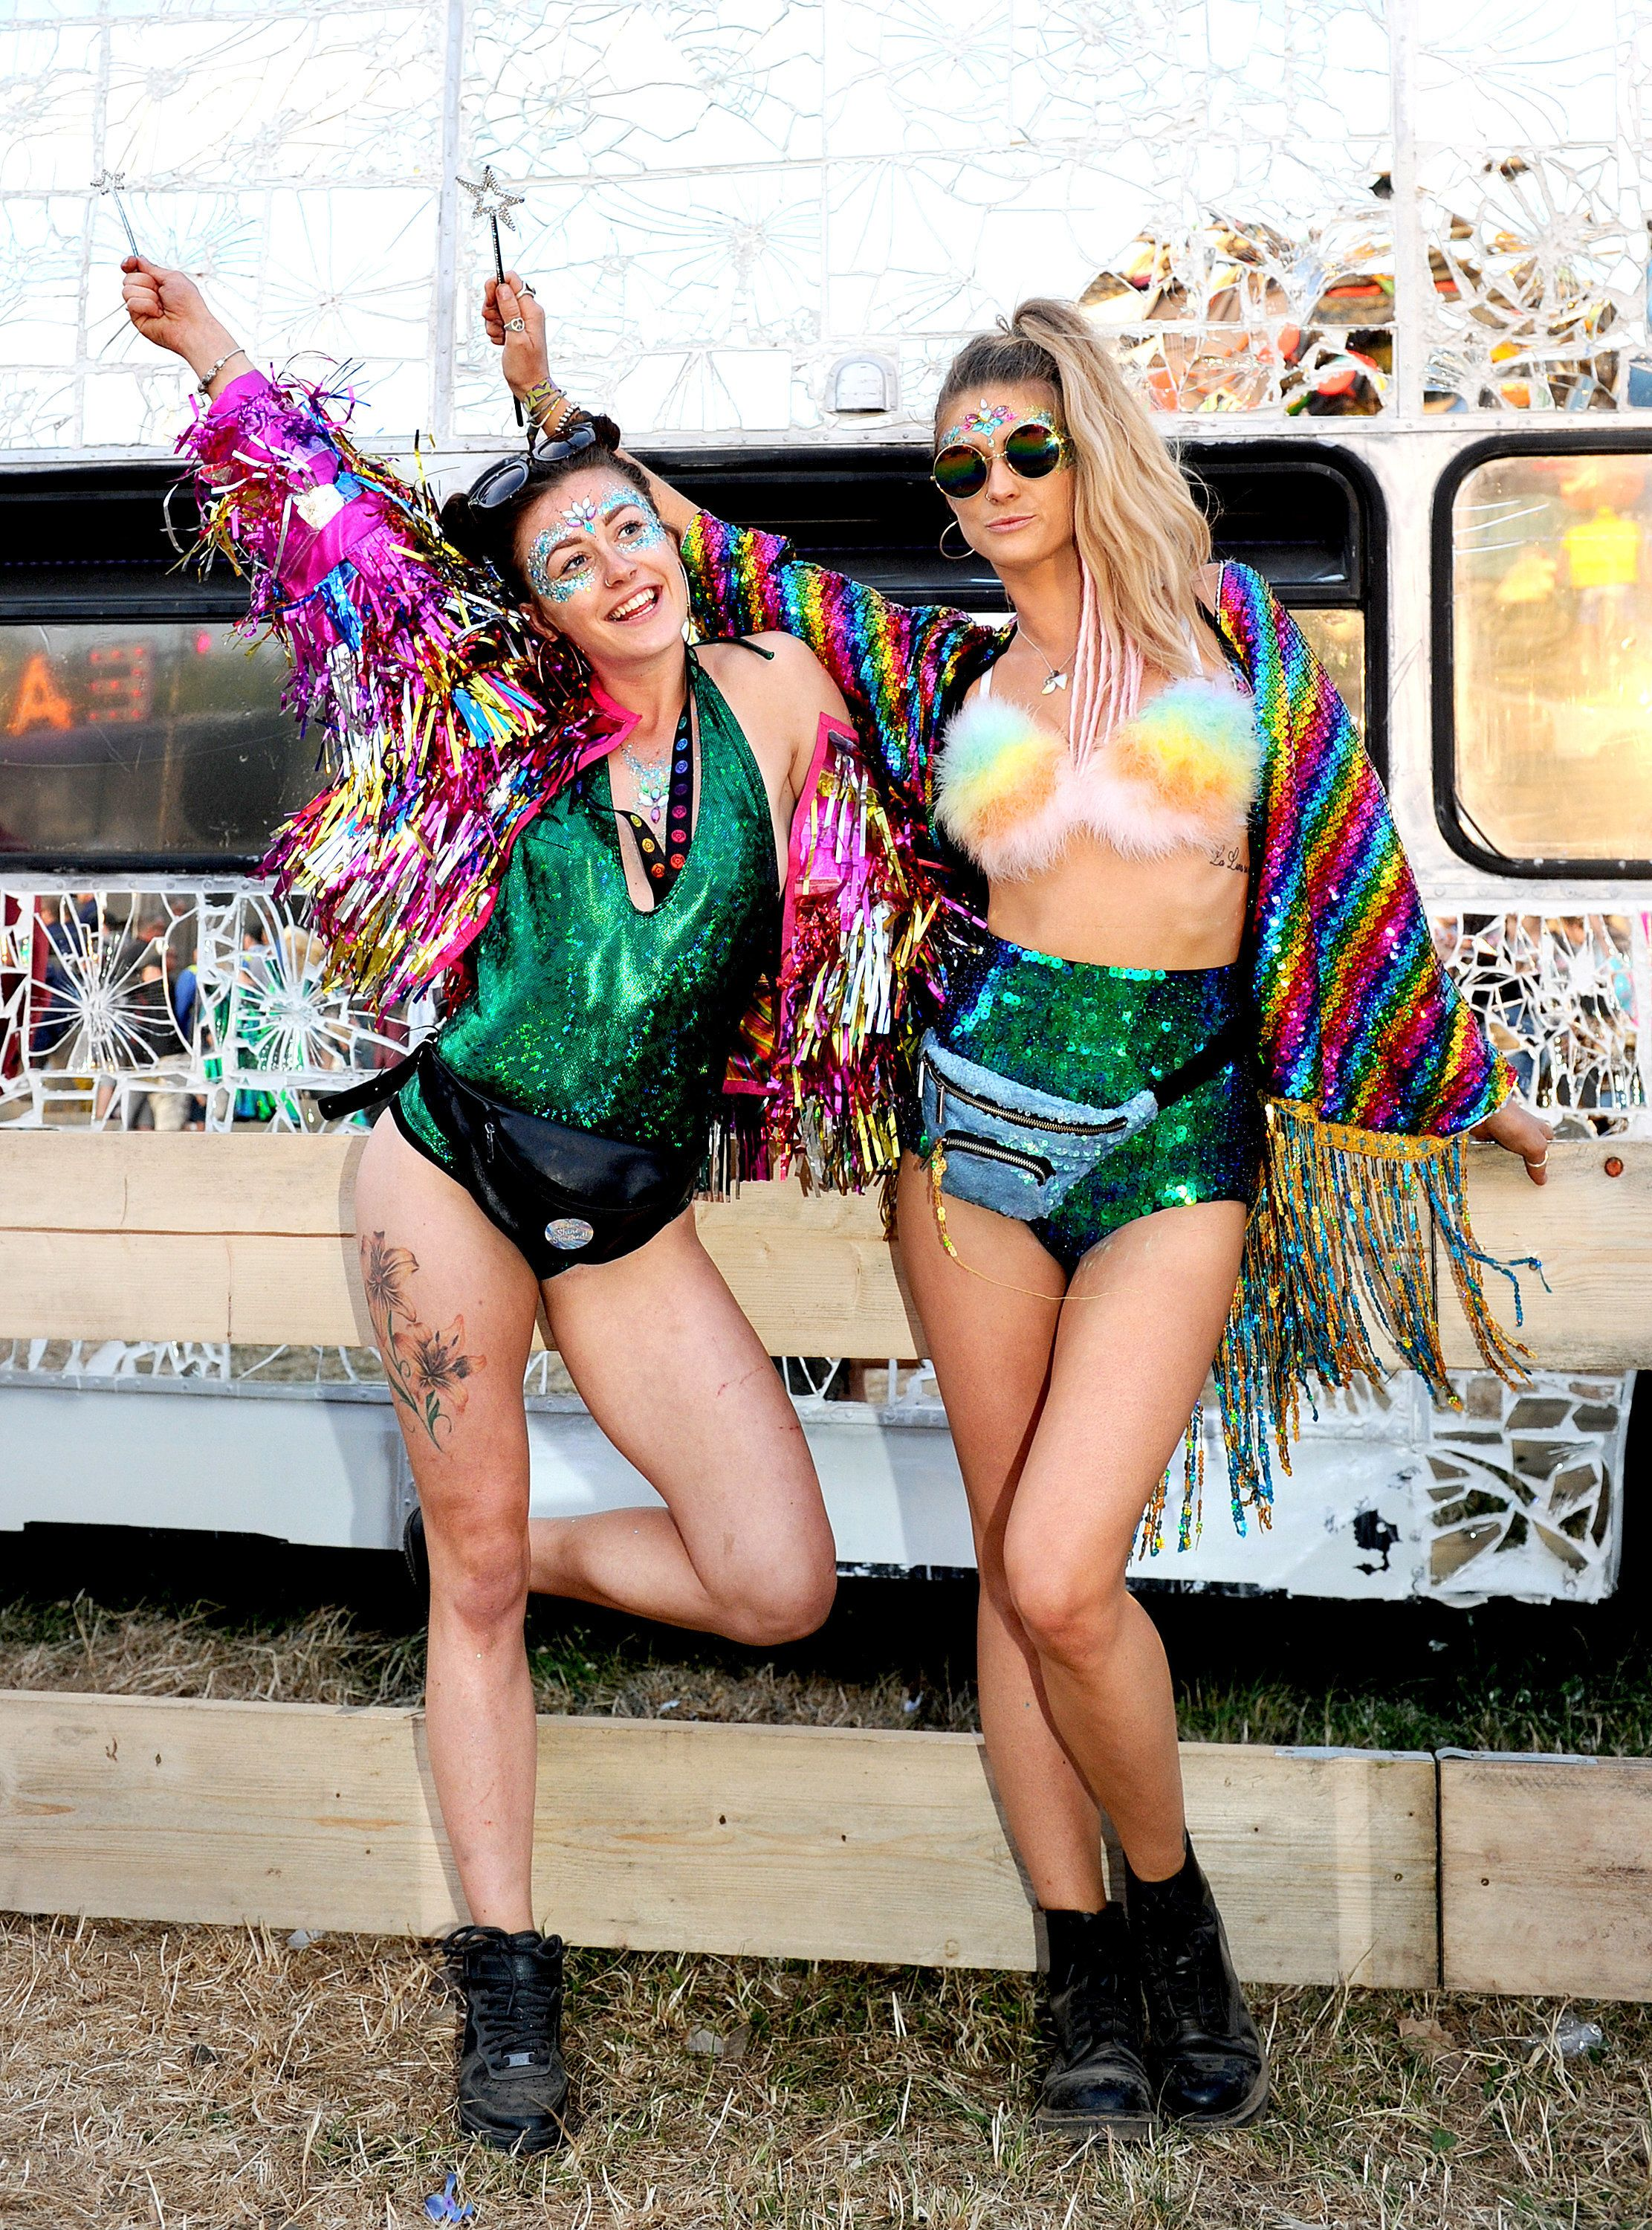 Glastonbury Fashion 2017 Style: It's All 90s Nostalgia With Glitter Cheeks, Space Buns And Neon